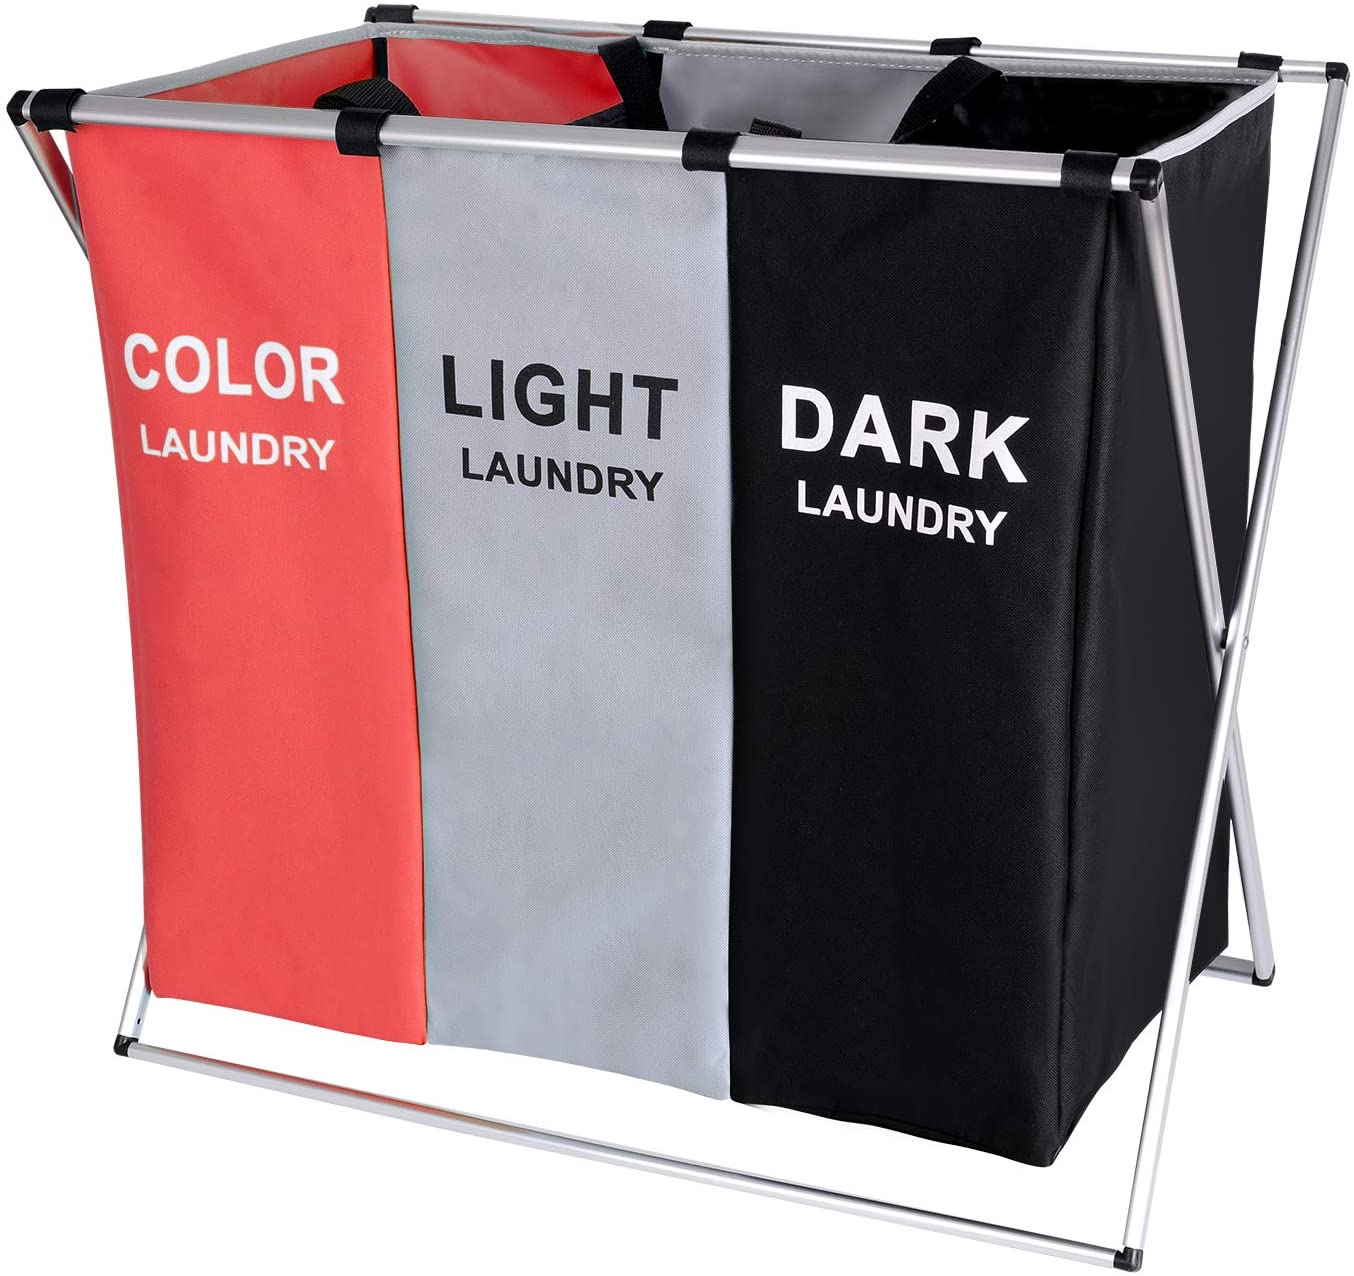 BRIGHTSHOW 135L Laundry Cloth Hamper Sorter Basket Bin Foldable 3 Sections with Aluminum Frame 62cm × 37cm x 58cm Washing Storage Dirty Clothes Bag for Bathroom Bedroom Home (Red+Grey+Black)